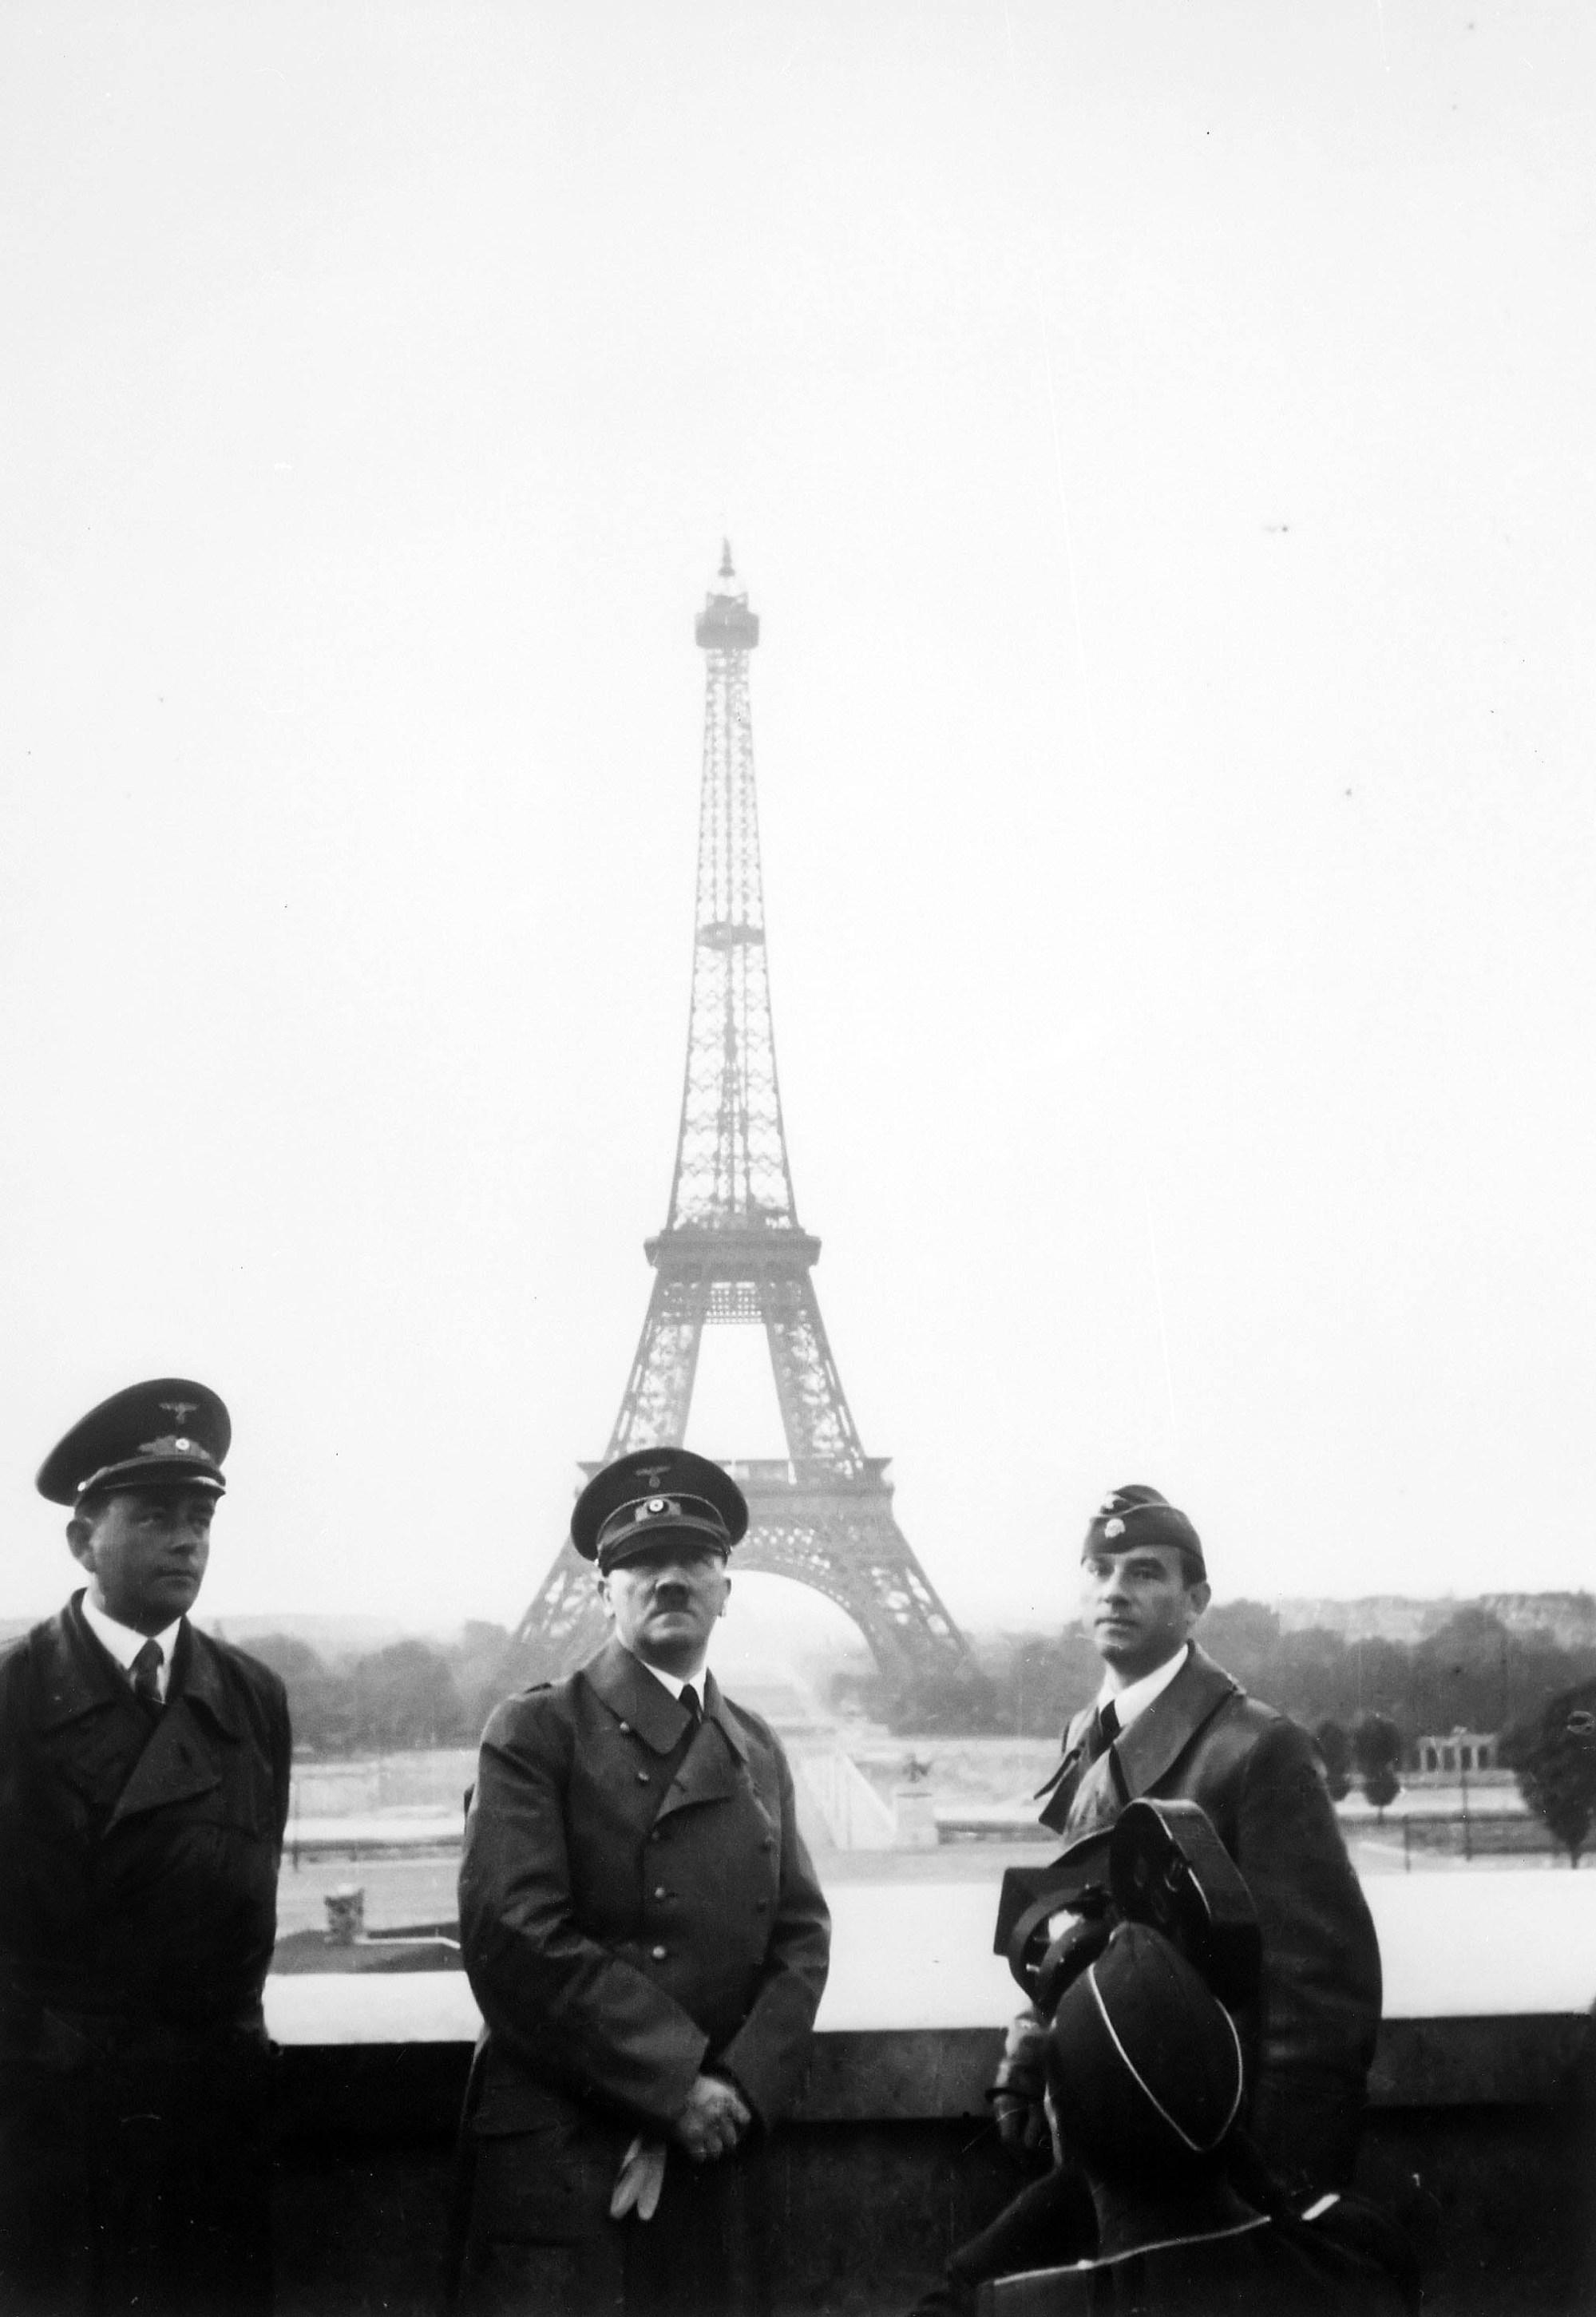 hight resolution of hitler visits paris with architect albert speer left and sculptor arno breker right 23 june 1940